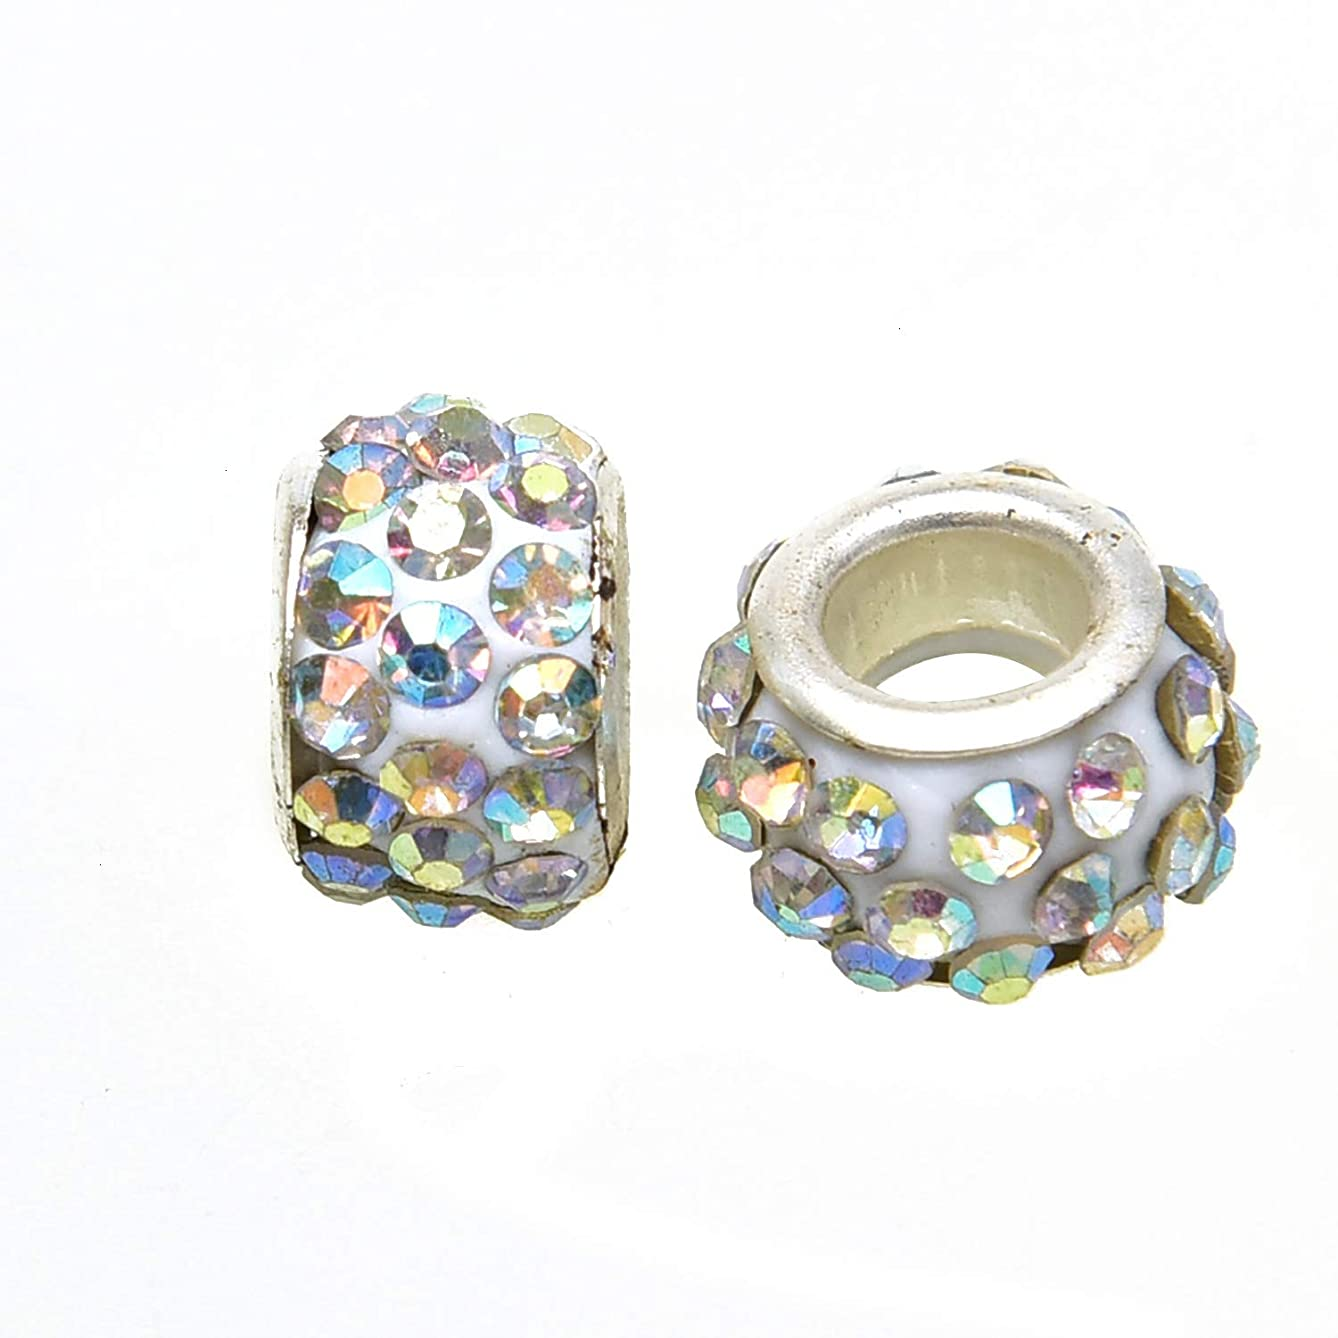 Monrocco 100 Pcs AB Color Rhinestone European Beads Large Hole Czech Crystal Spacer Beads Snake Chain Beads for Jewelry Making